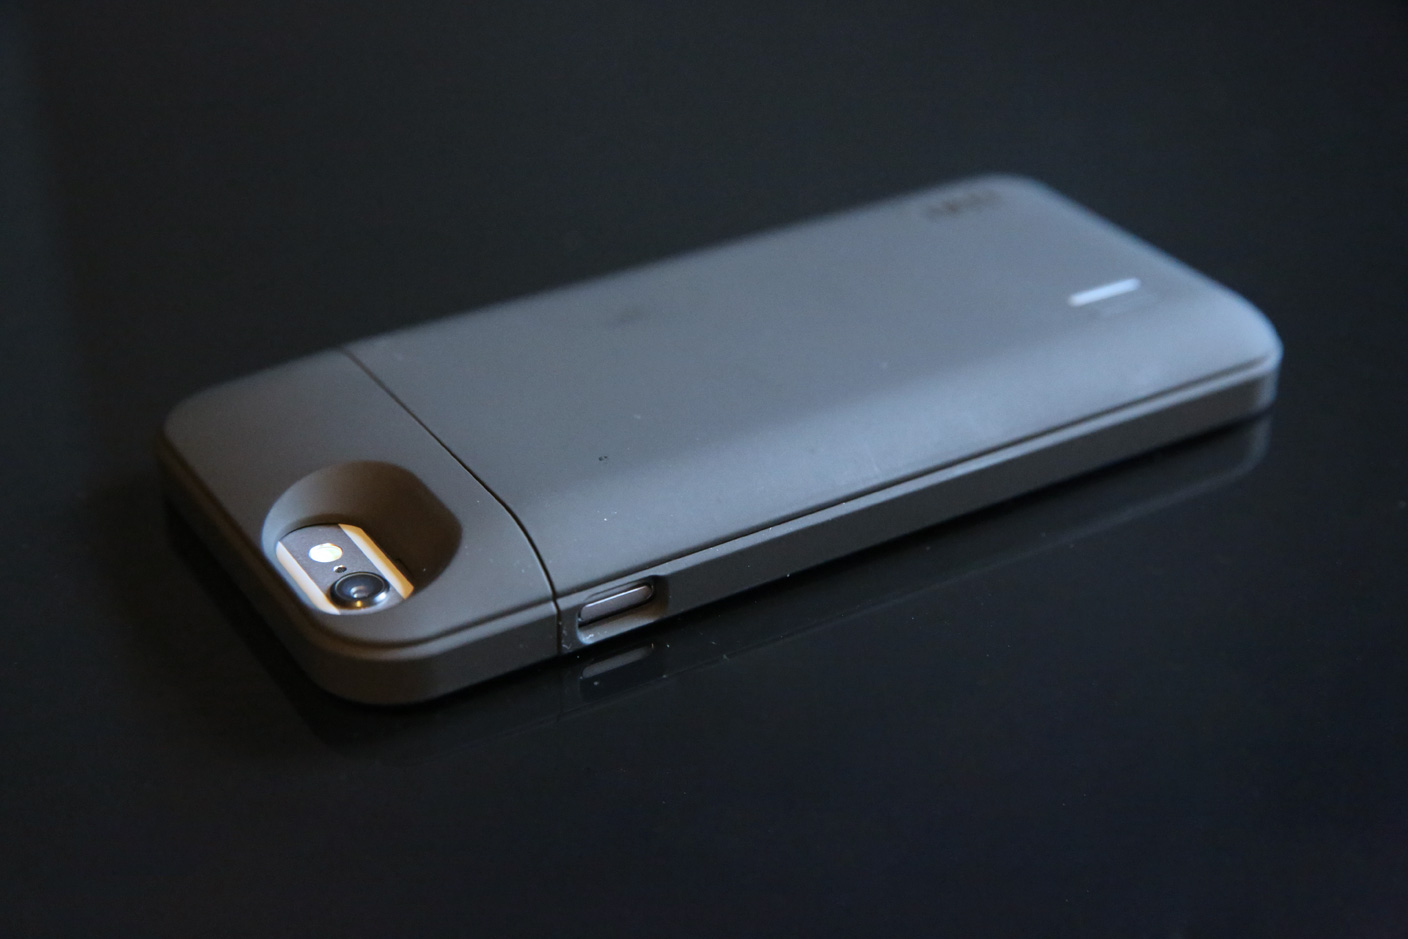 quality design 23acf 4c7b2 Review: uNu's DX-6 battery case more than doubles the iPhone 6's ...